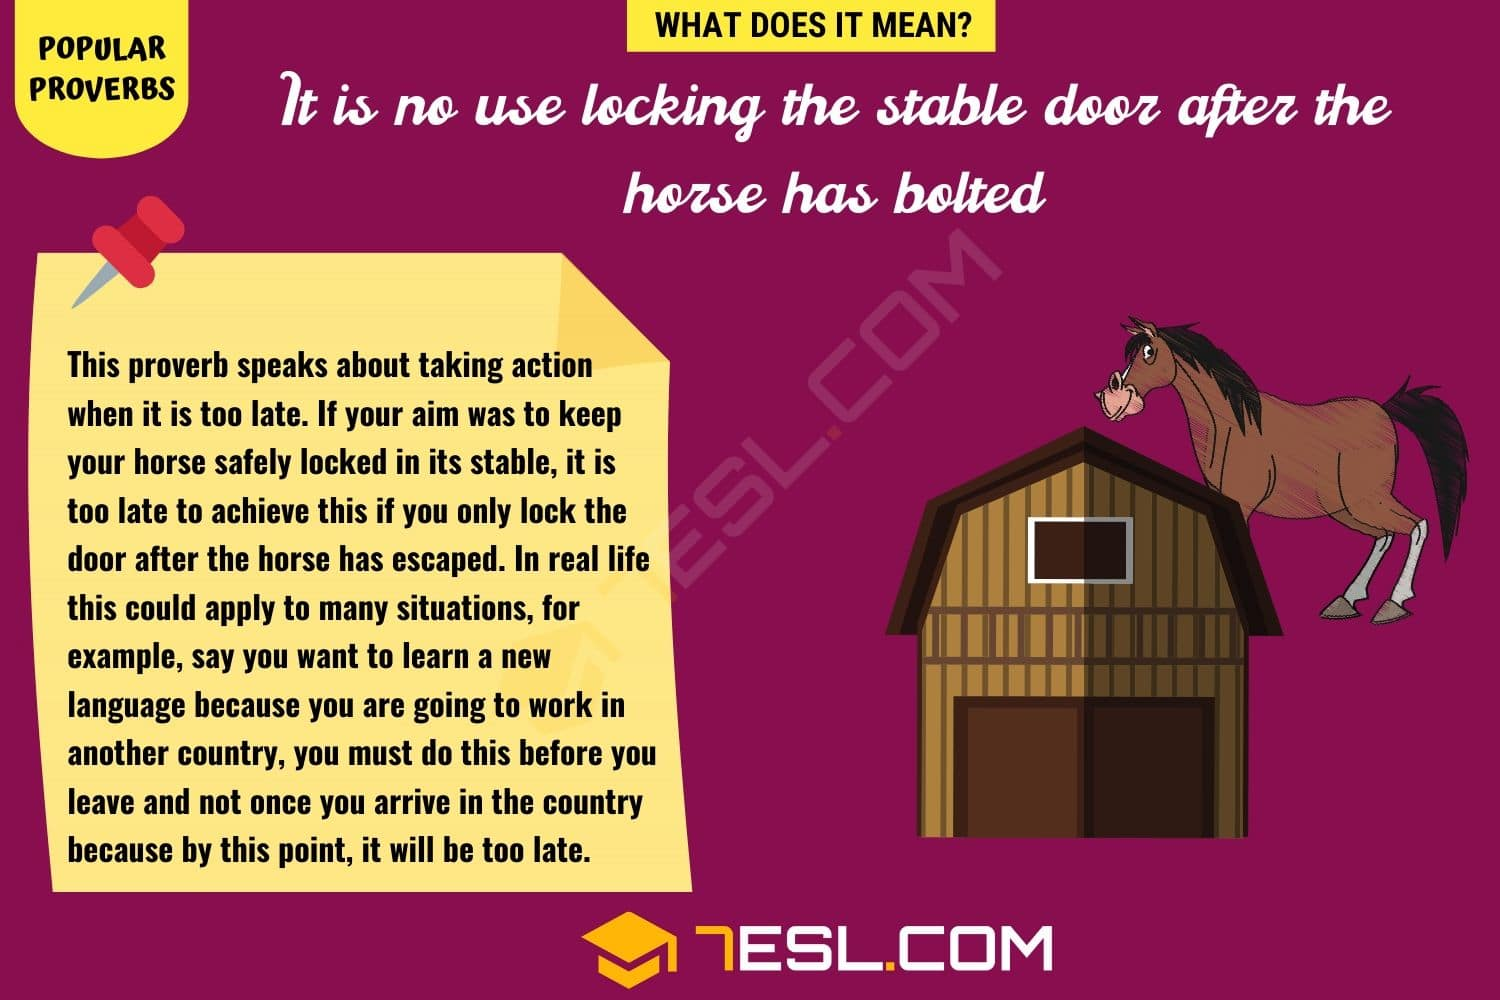 It is no use locking the stable door after the horse has bolted